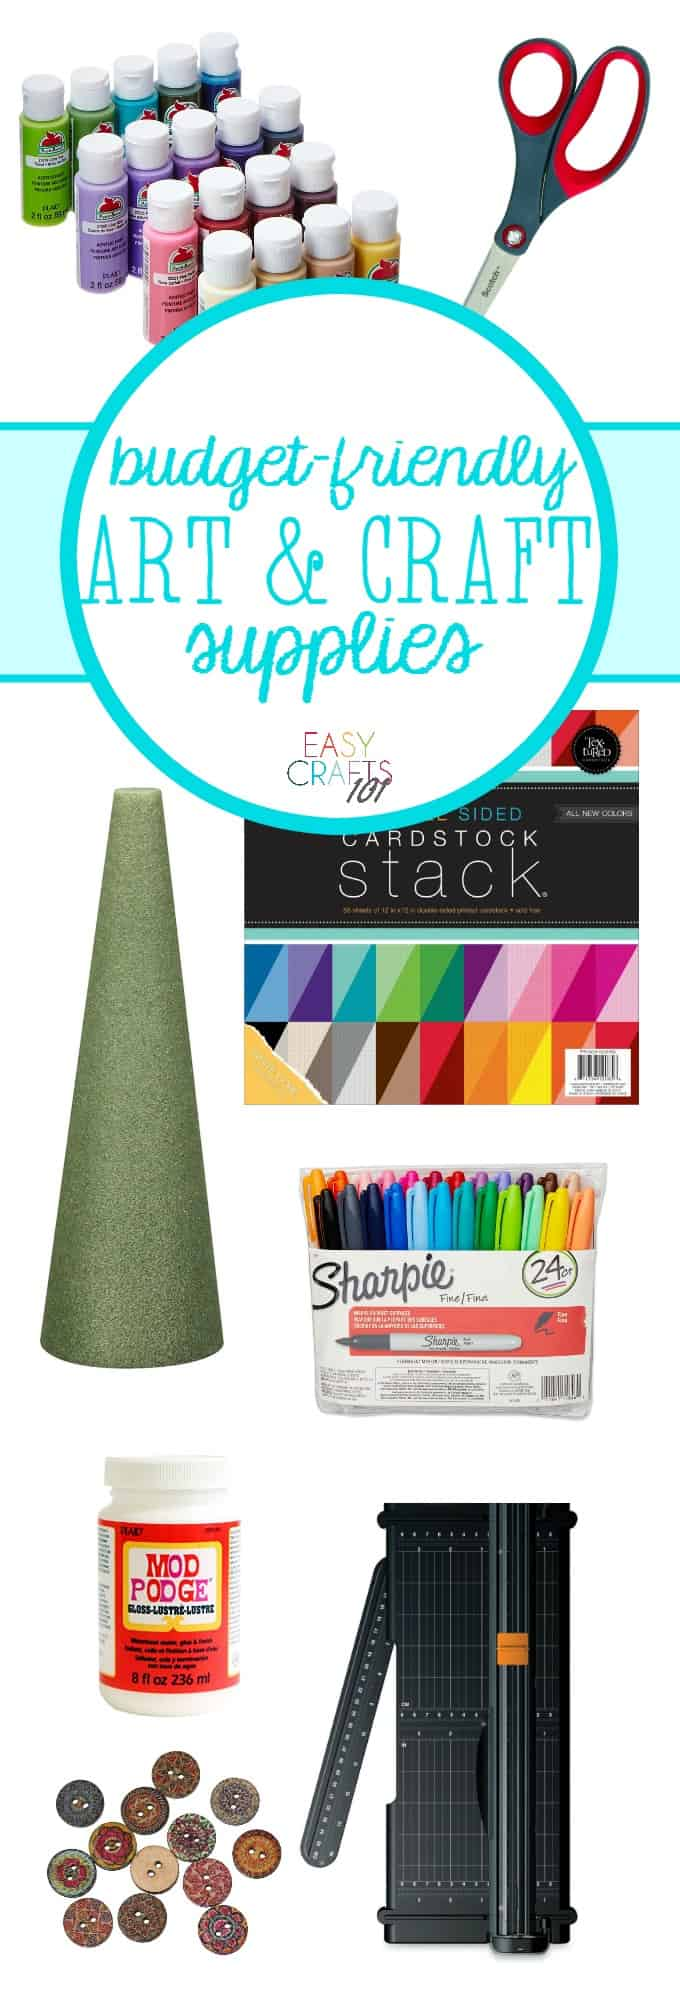 Budget-Friendly Art and Craft Supplies